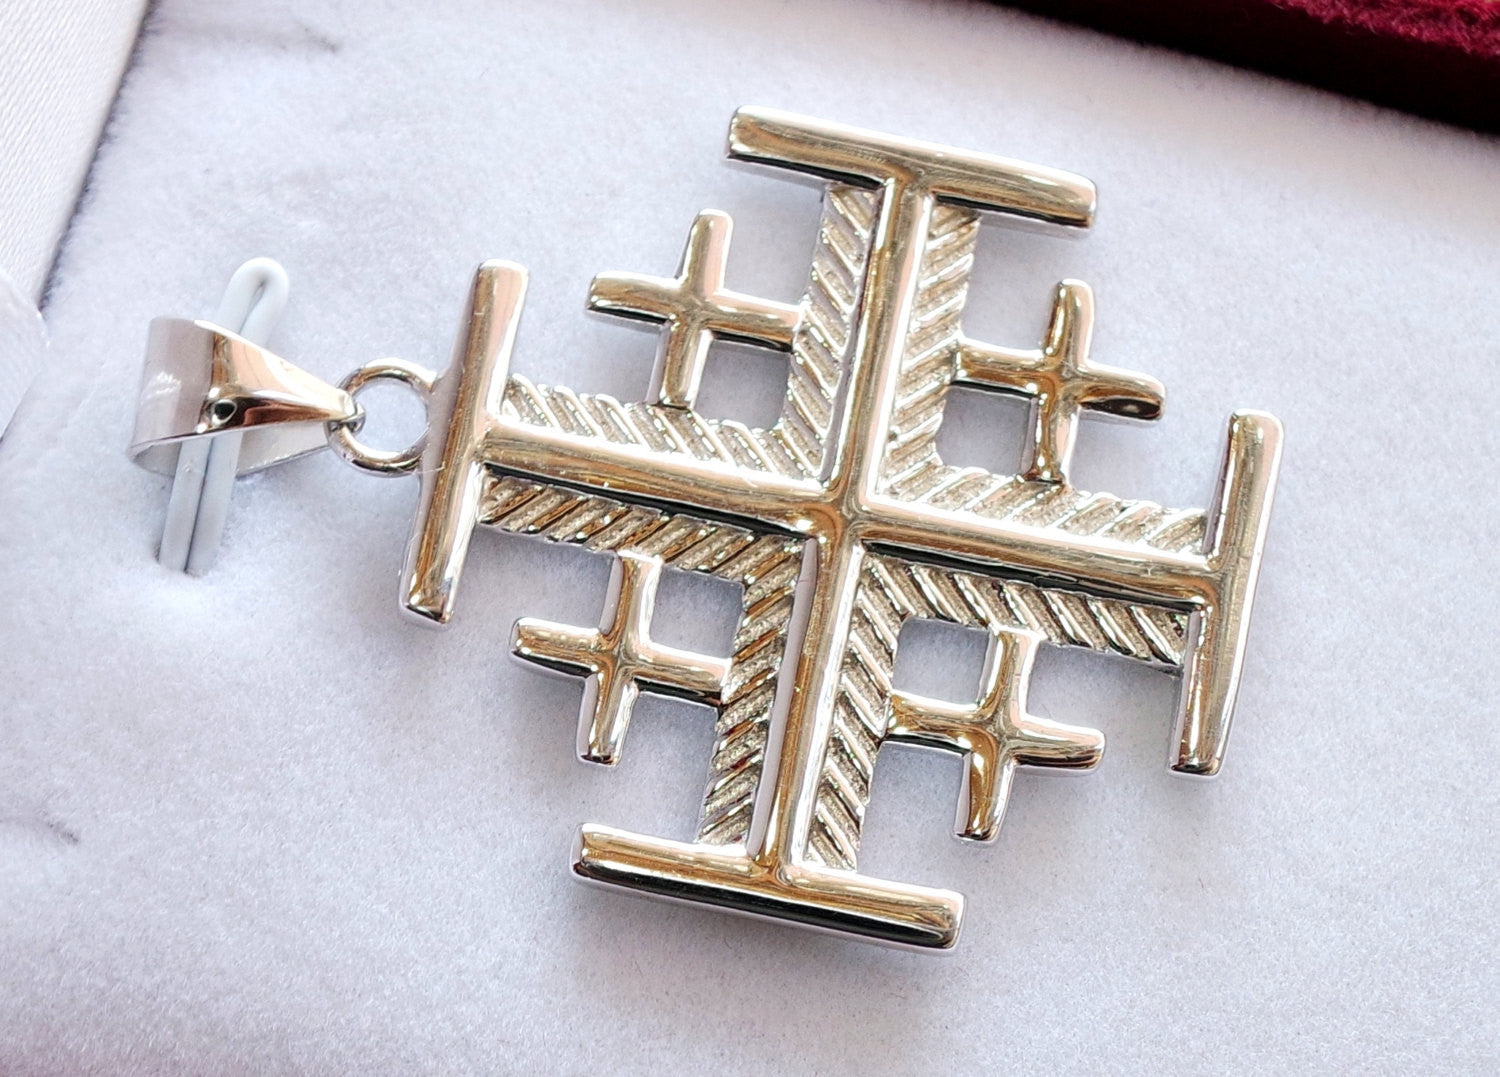 Jerusalem cross pendant sterling silver 925 middle eastern jewelry christianity vintage handmade heavy express shipping